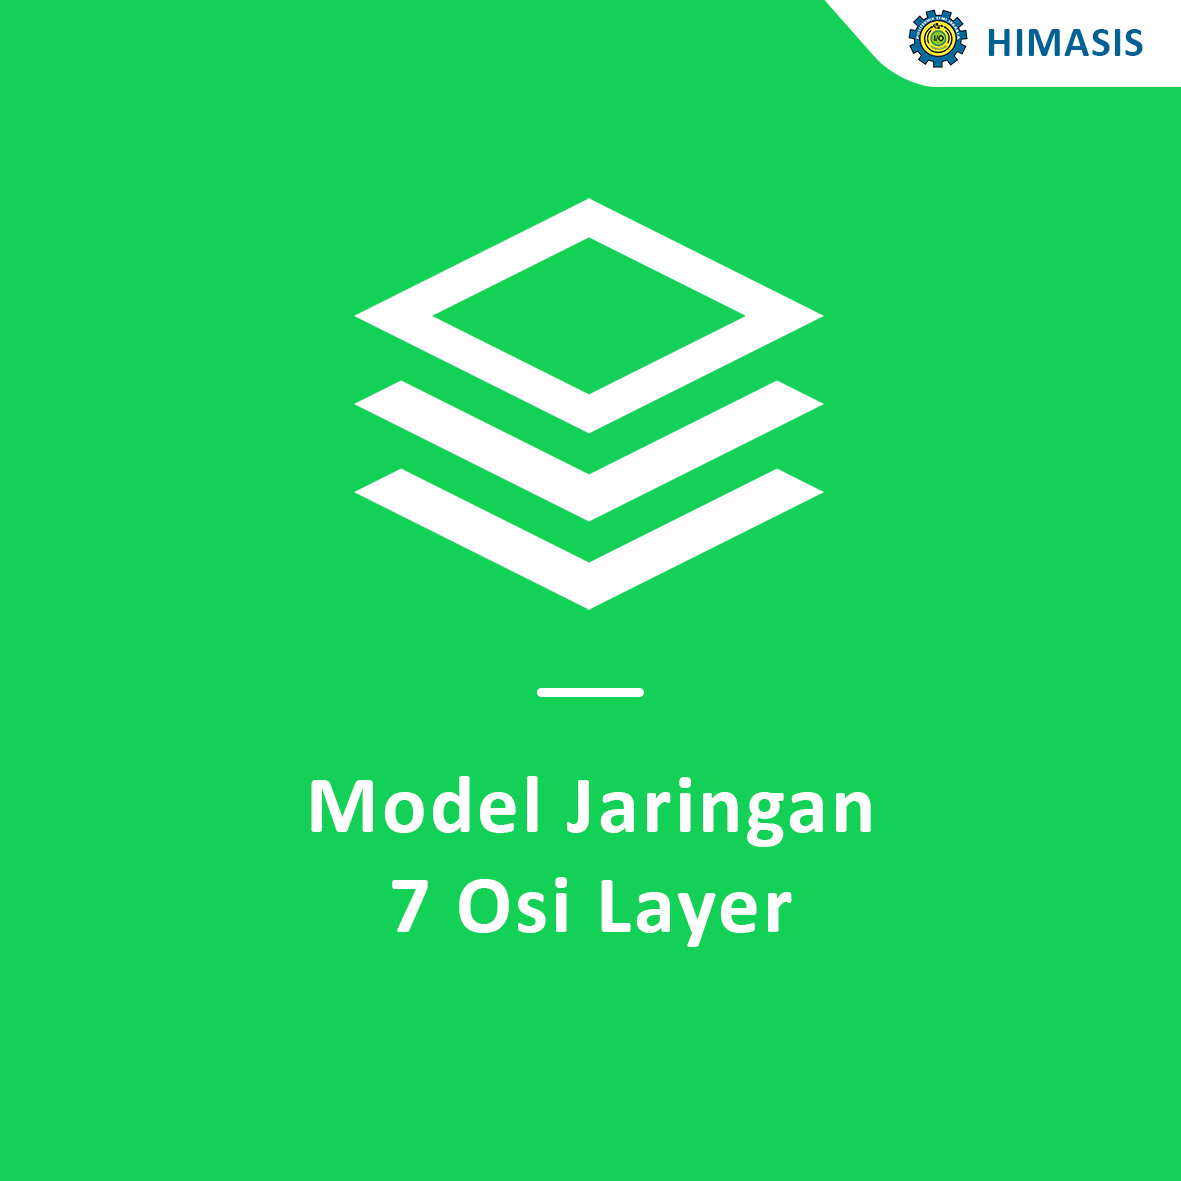 Model Jaringan 7 Osi Layer